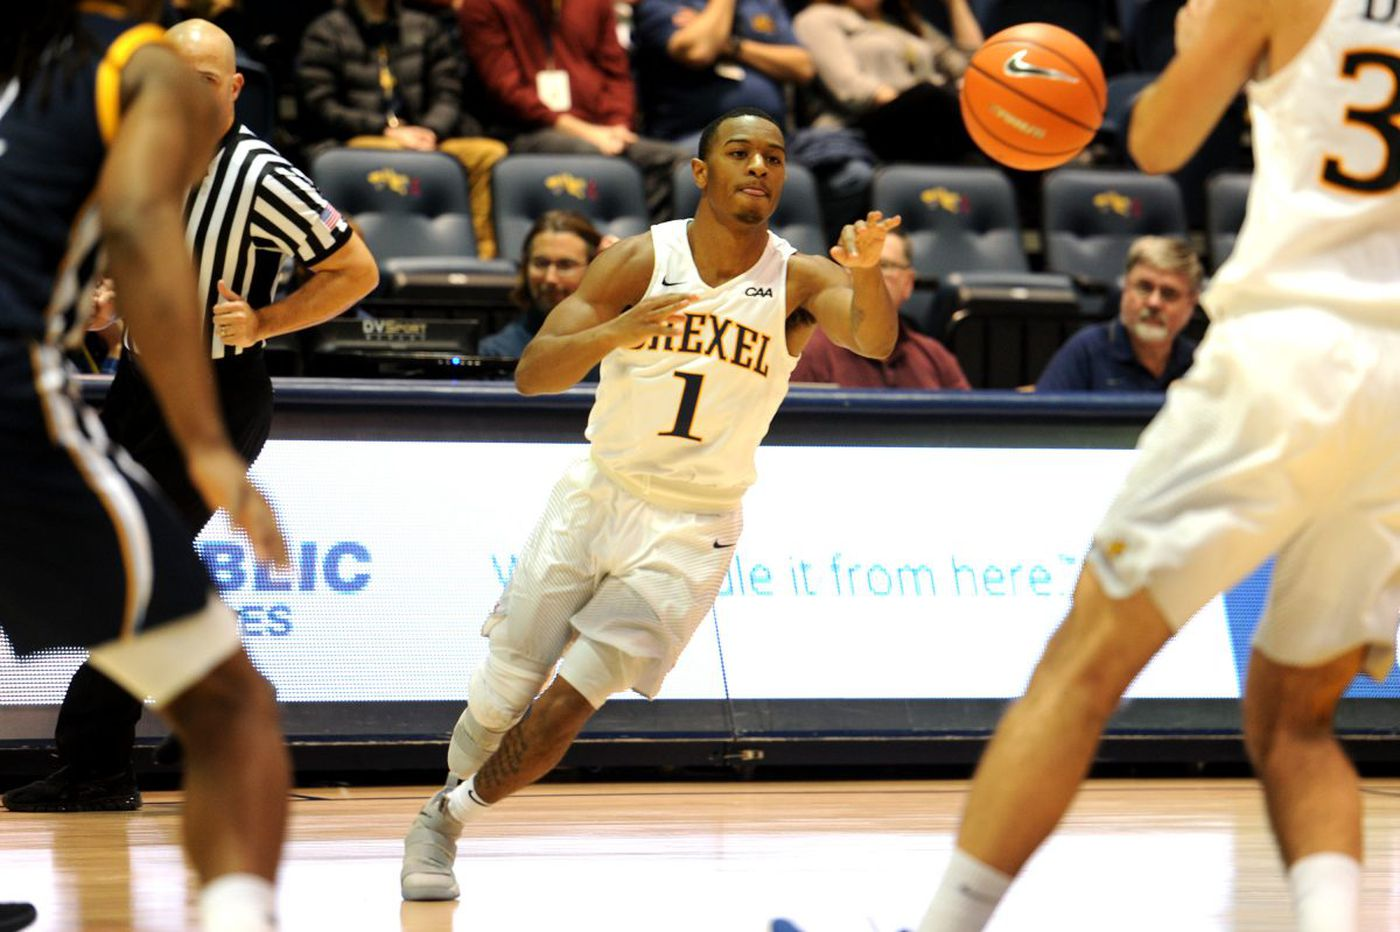 Drexel drops league opener to Elon, 90-75